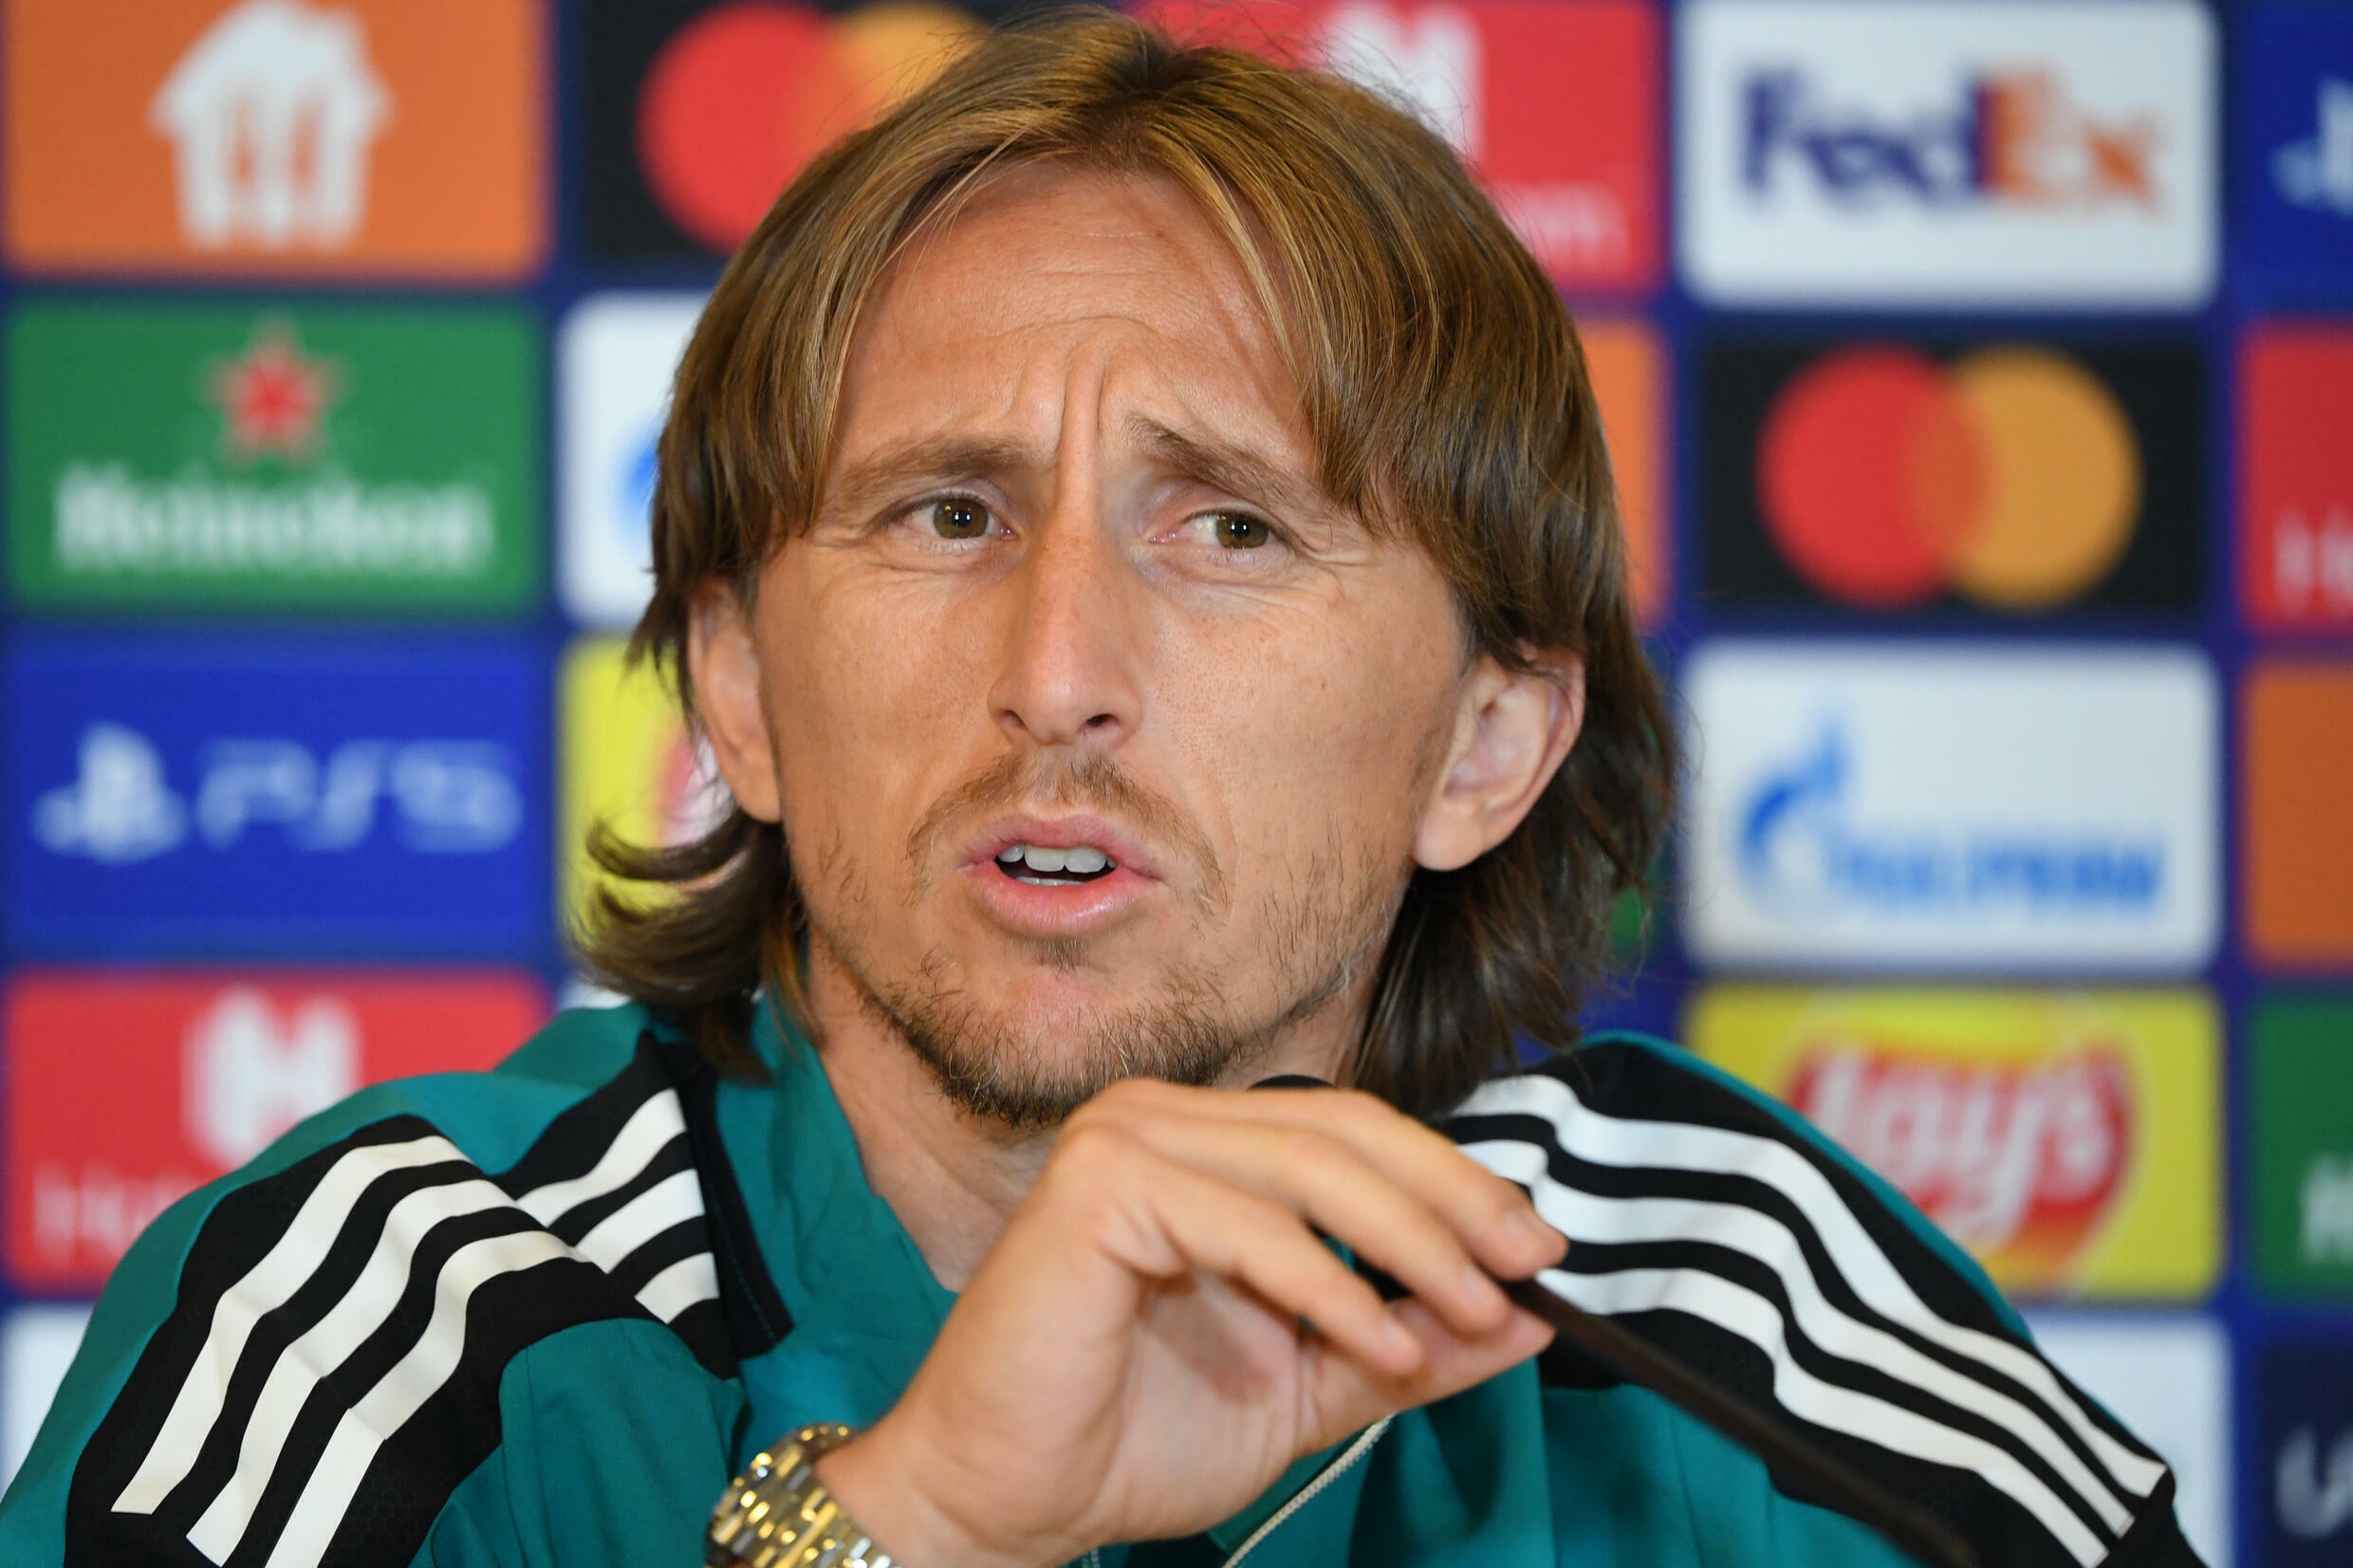 Luka Modric told a press conference ahead of Real Madrid's Champions League game against Shakhtar Donetsk that he was against making World Cups more frequent.